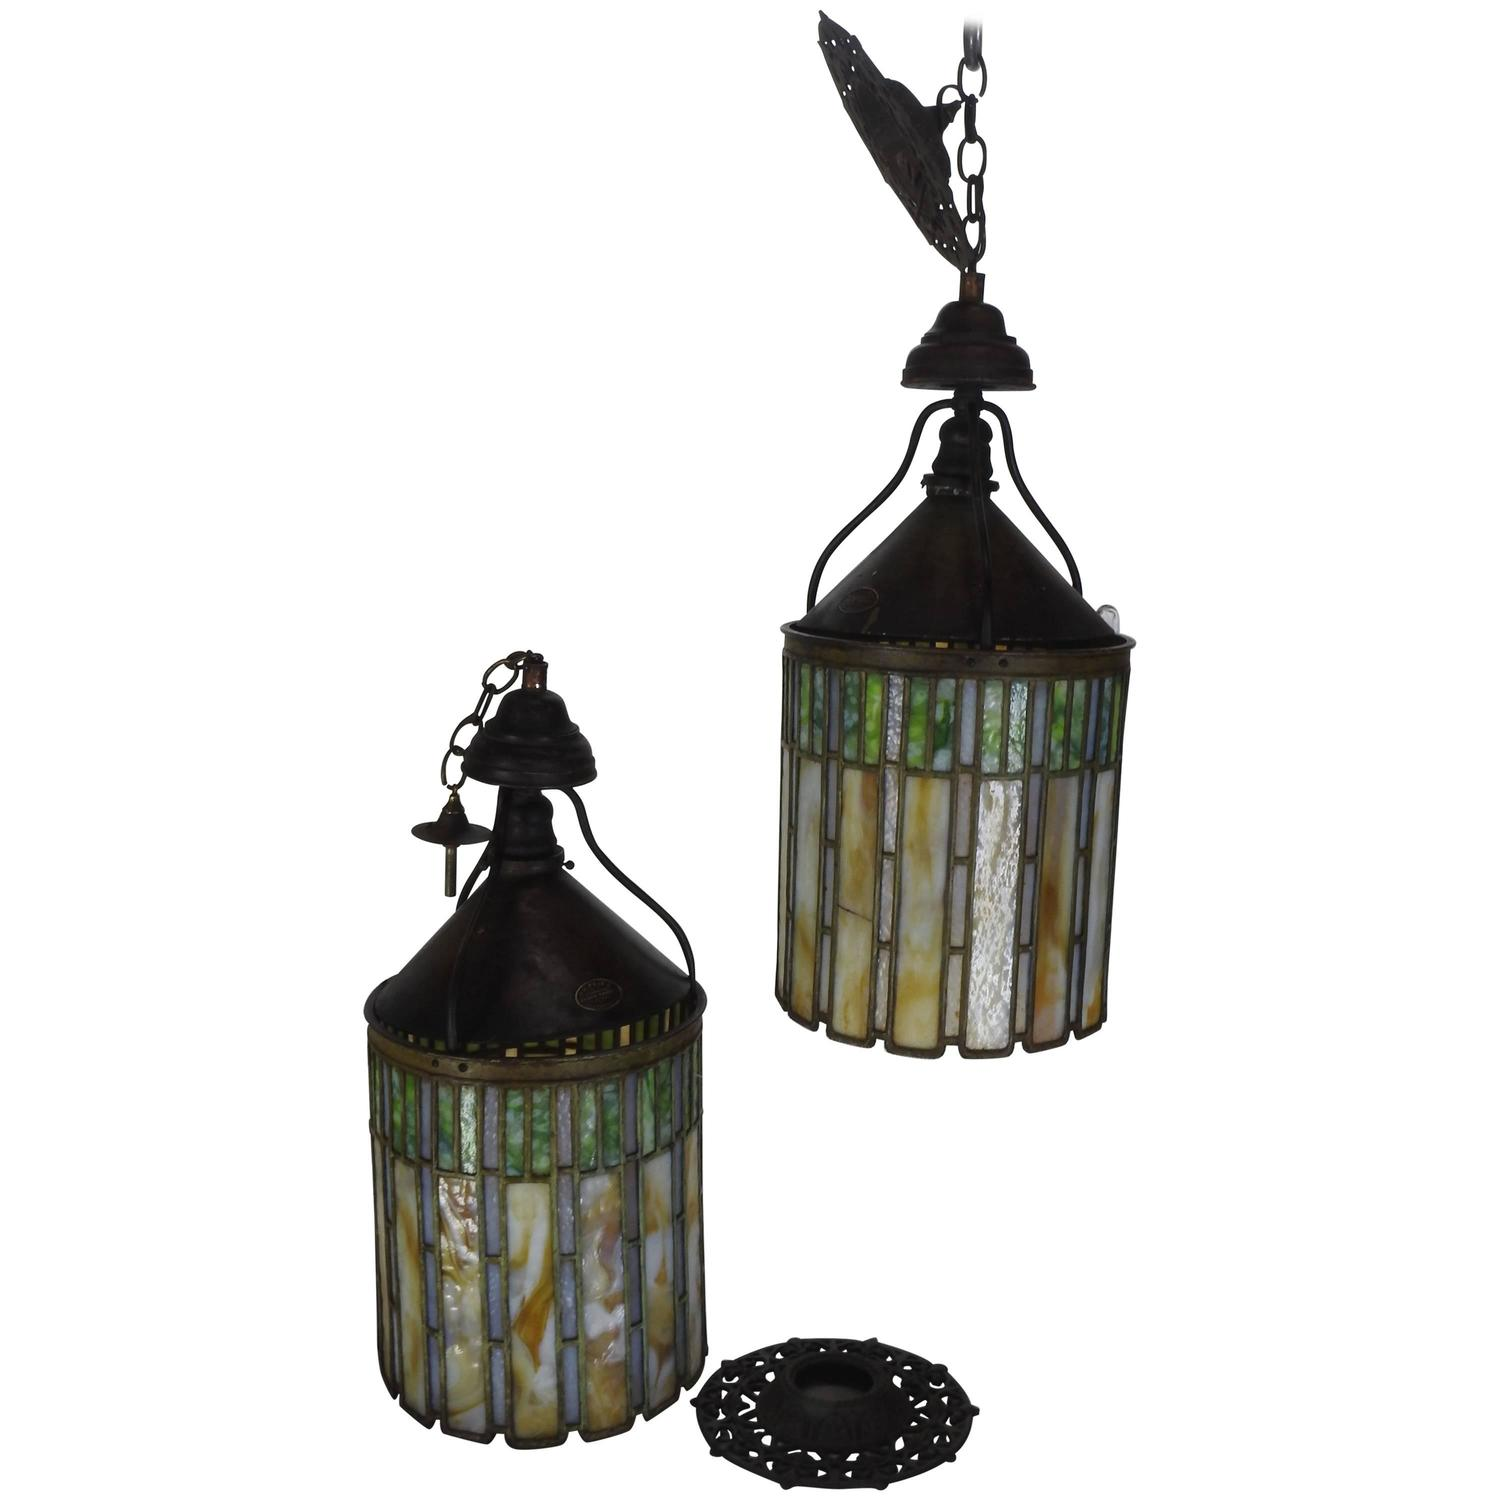 Arts and Crafts Chandeliers and Pendants 131 For Sale at 1stdibs